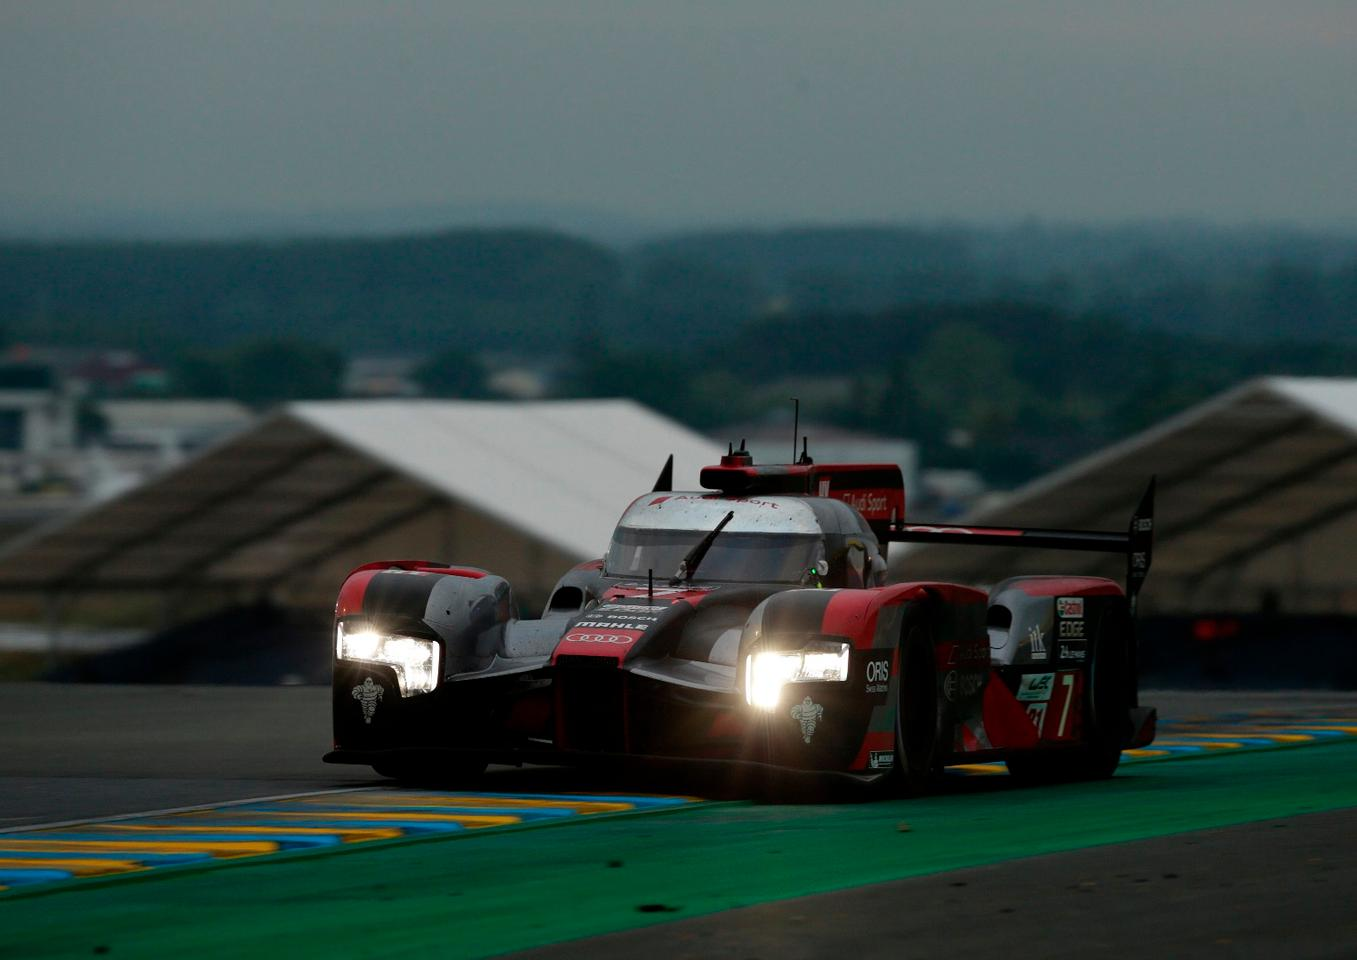 The Audi R18 e-tron quattro at Le Mans 2016